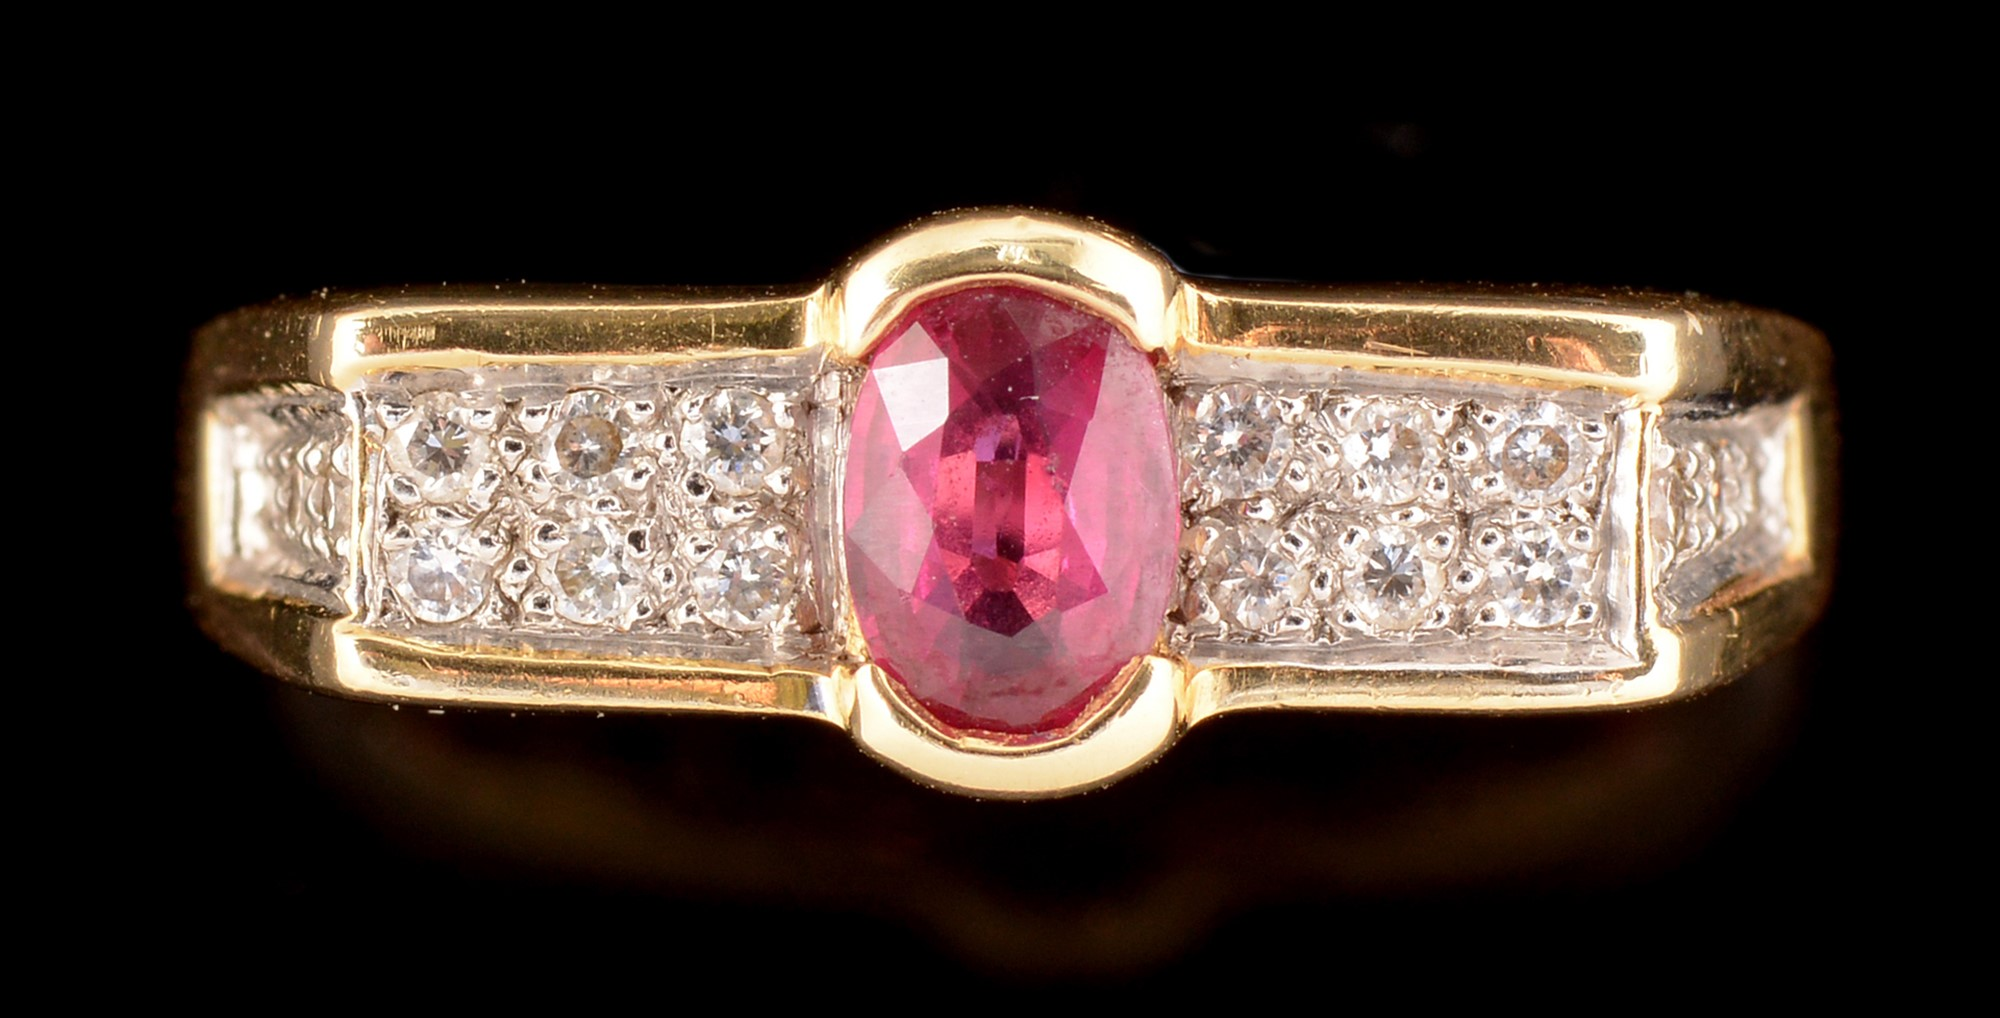 Lot 483 - Ruby and diamond ring